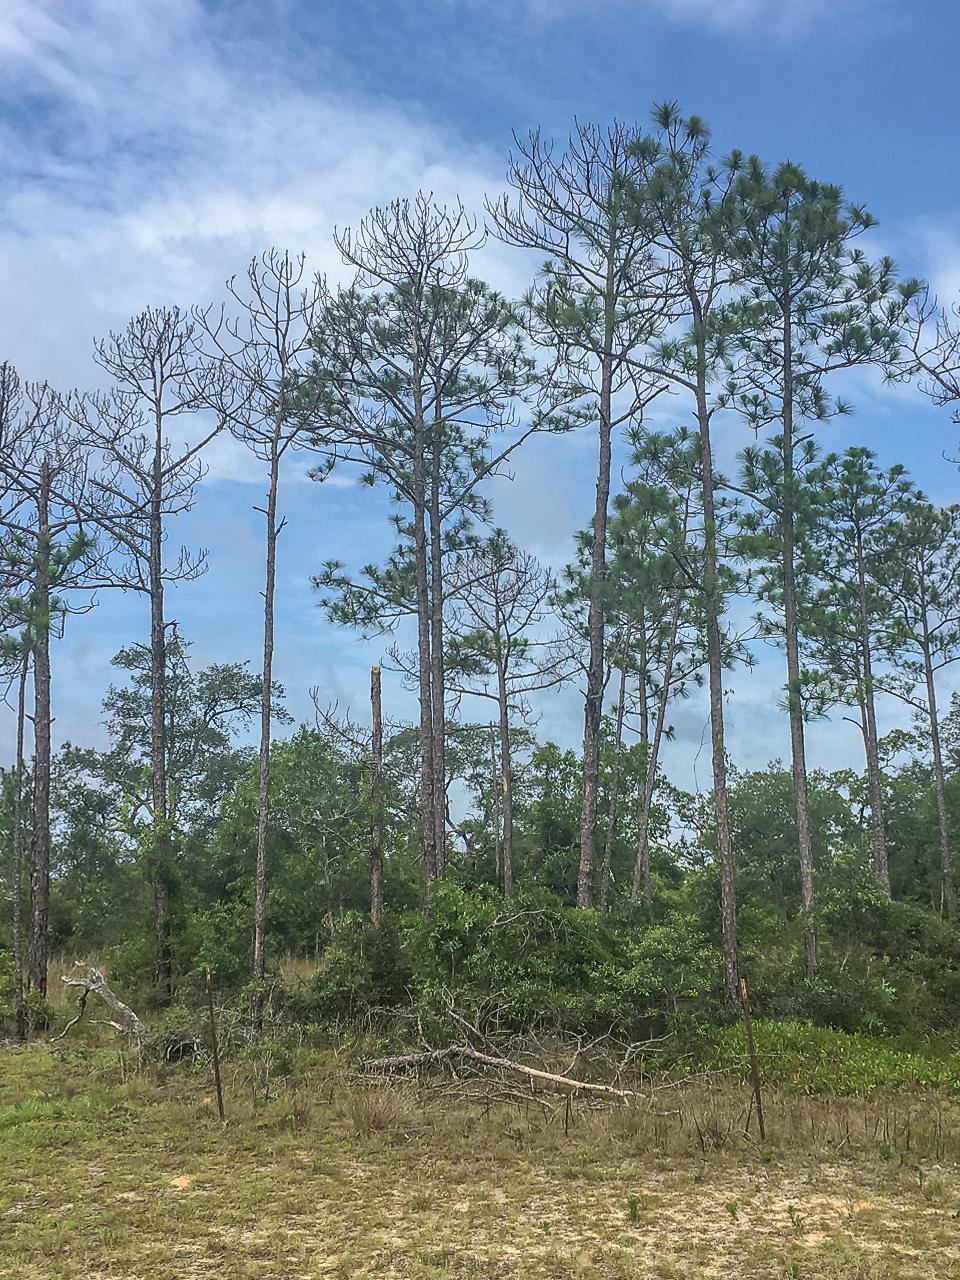 These pines grew tall and straight with most of the branches toward the top where they would receive the most sunlight. Trees with this type of structure may be very vulnerable to high winds, and some of these trees may have died due to hurricane damage.